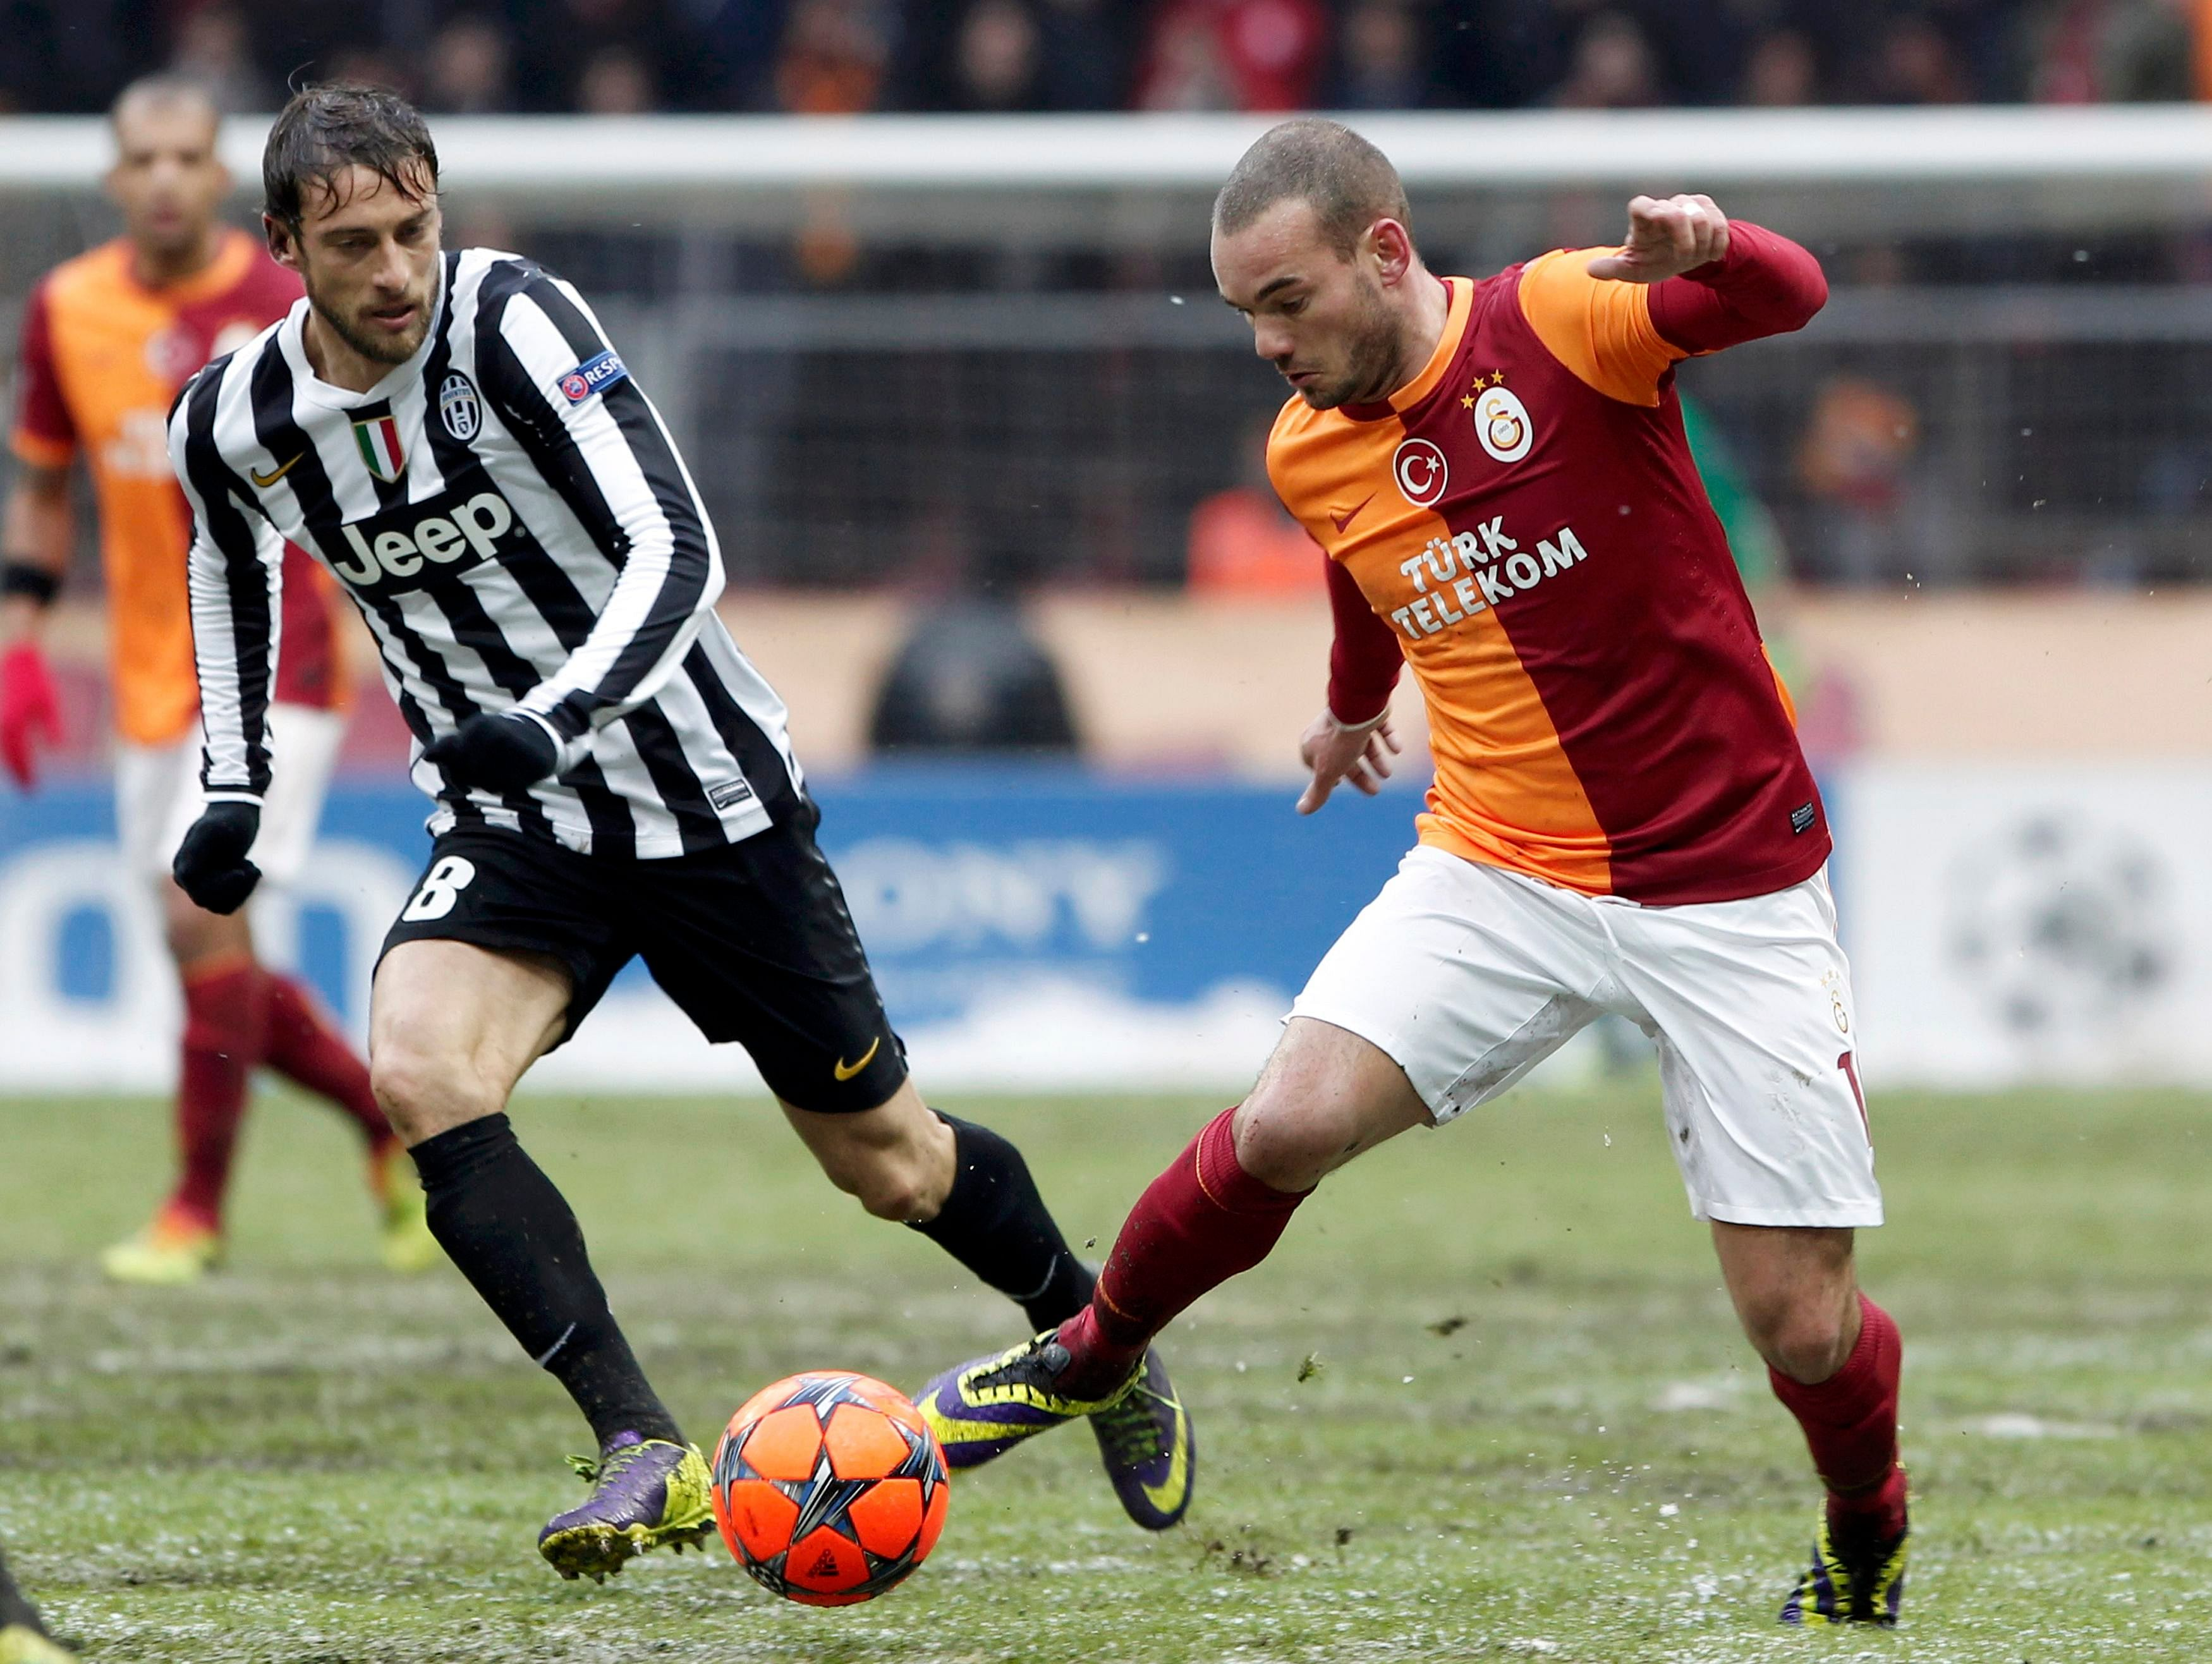 Wesley Sneijder confident of Galatasaray beating Chelsea